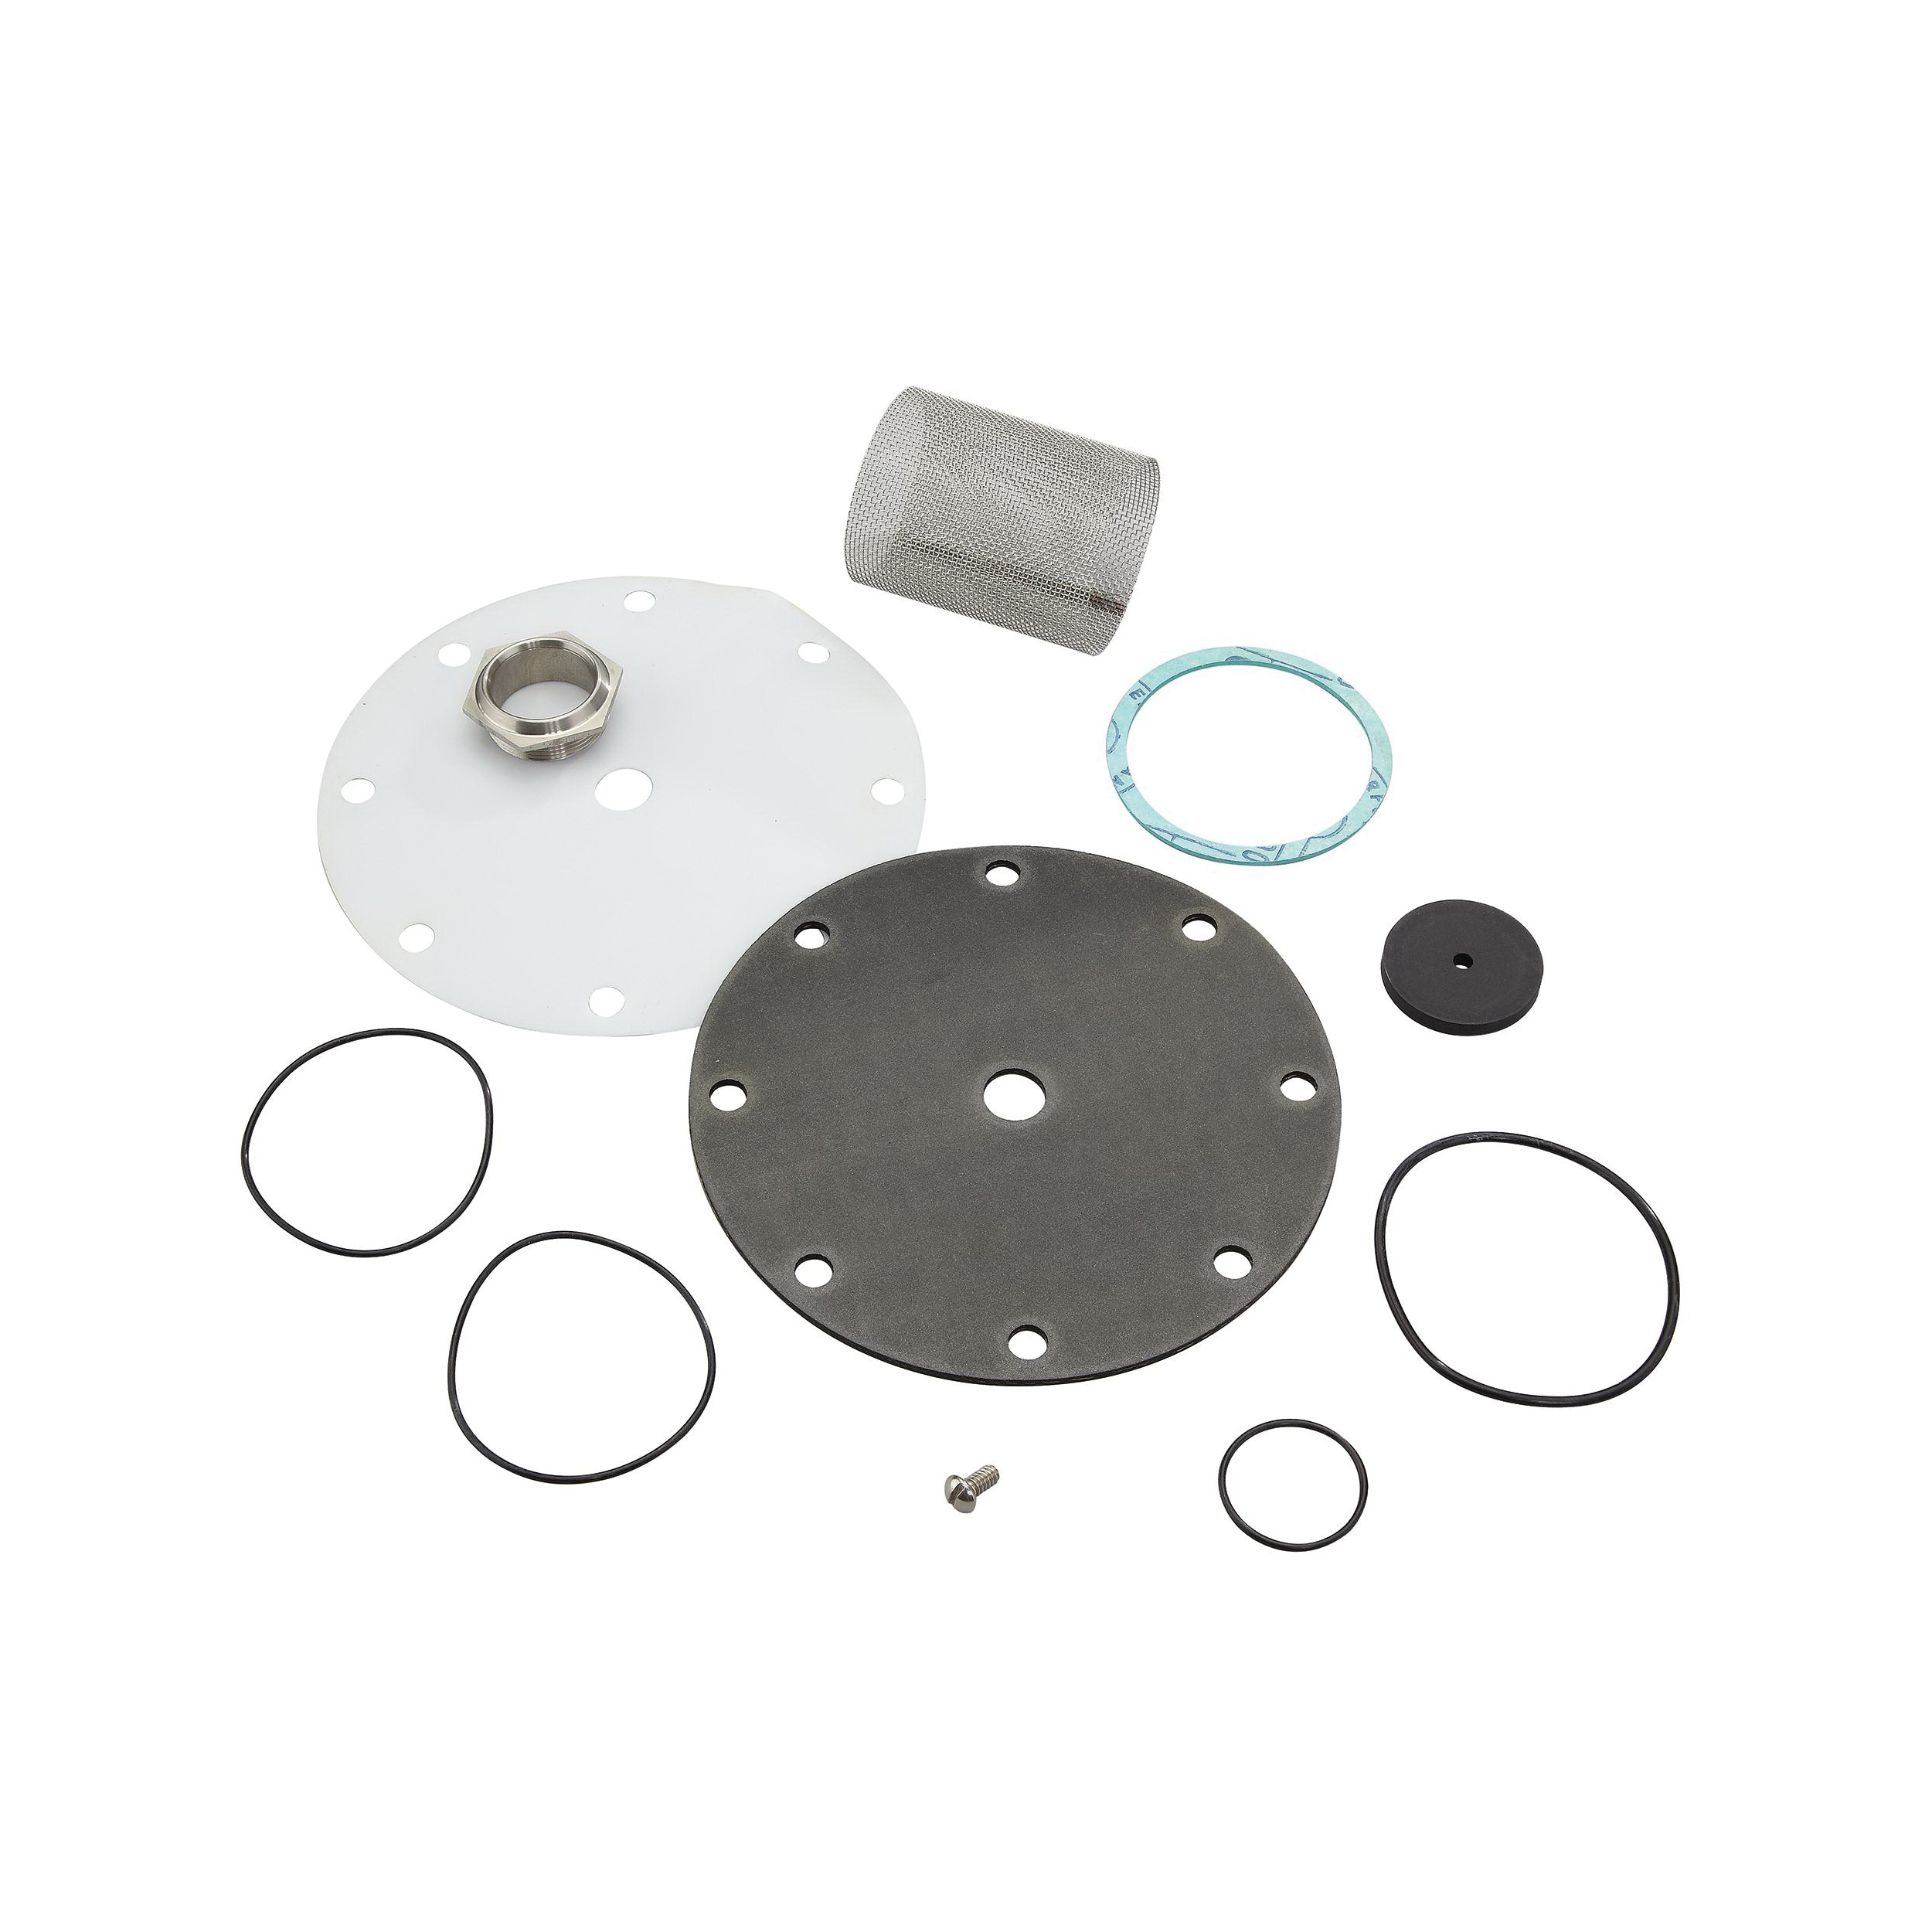 WATTS® 0125126 Total Repair Kit, For Use With LFU5-Z3 Series 2 in Water Pressure Reducing Valve